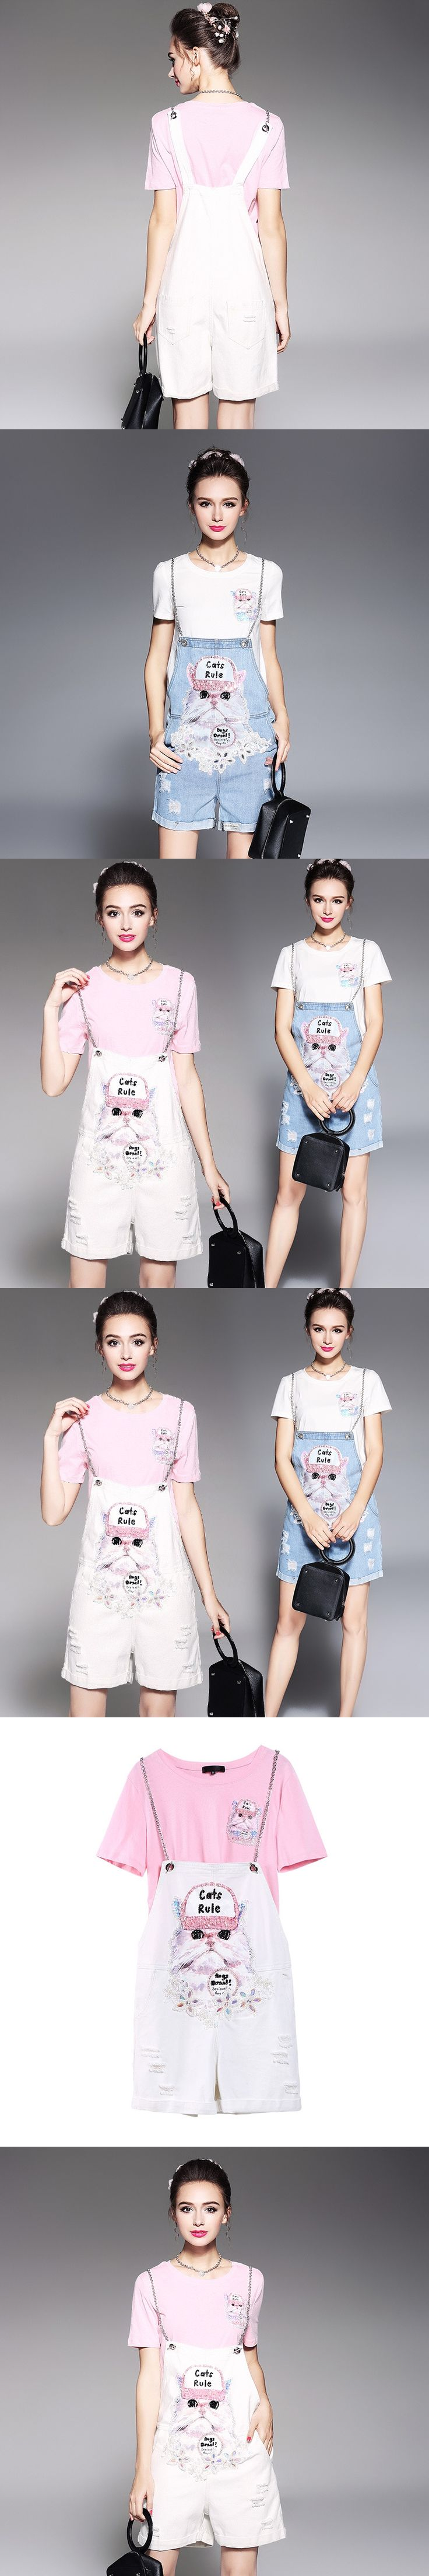 Casual Women 2 piece Set New Summer Beaded T shirt Tops And Printed Cat Denim Rompers Jumpsuits Sets For Ladies RY5623T